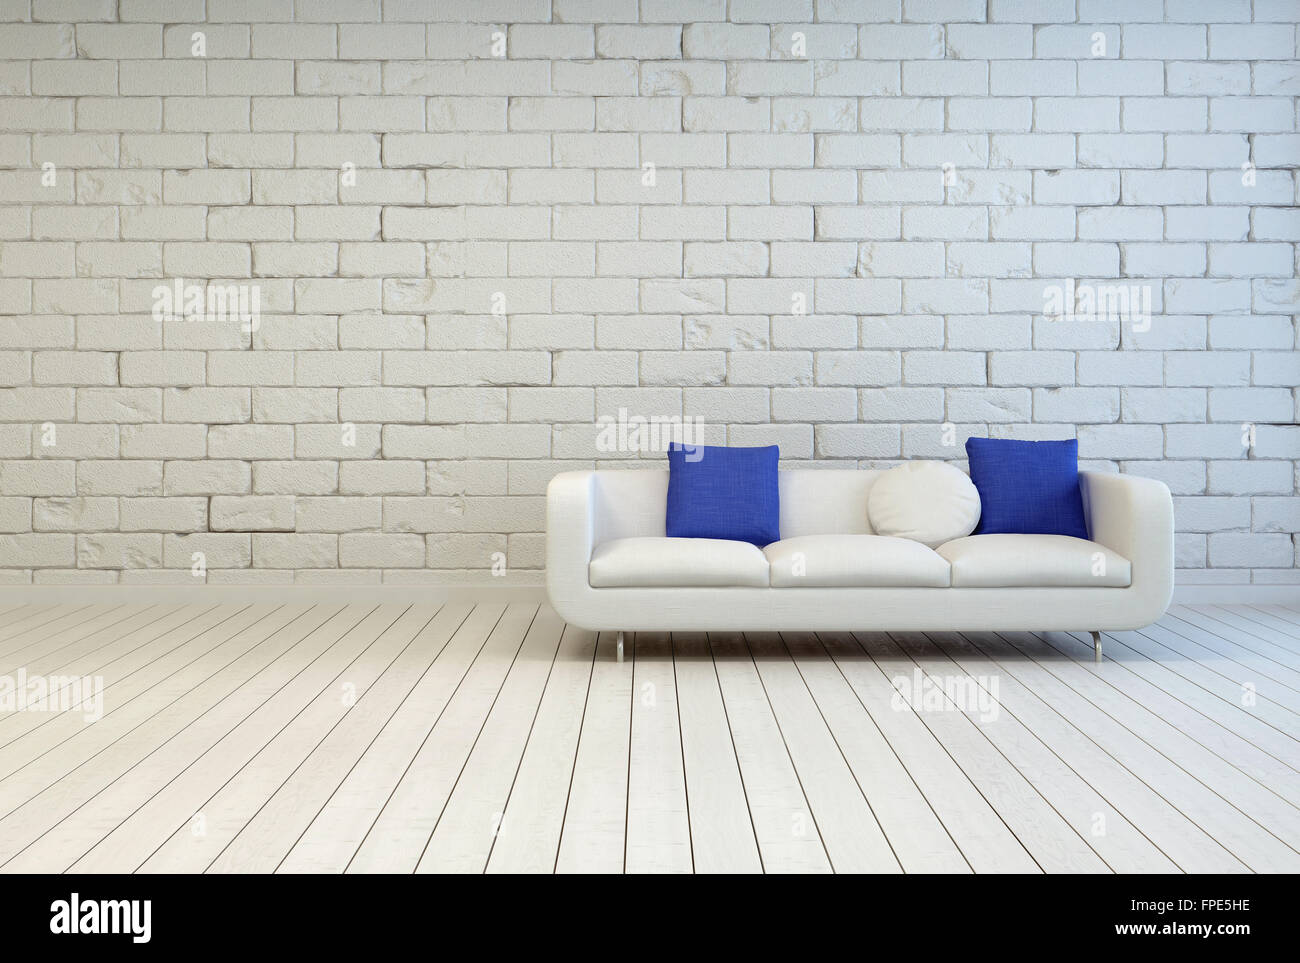 Elegant White Couch With White and Blue Pillows on an Empty Living ...